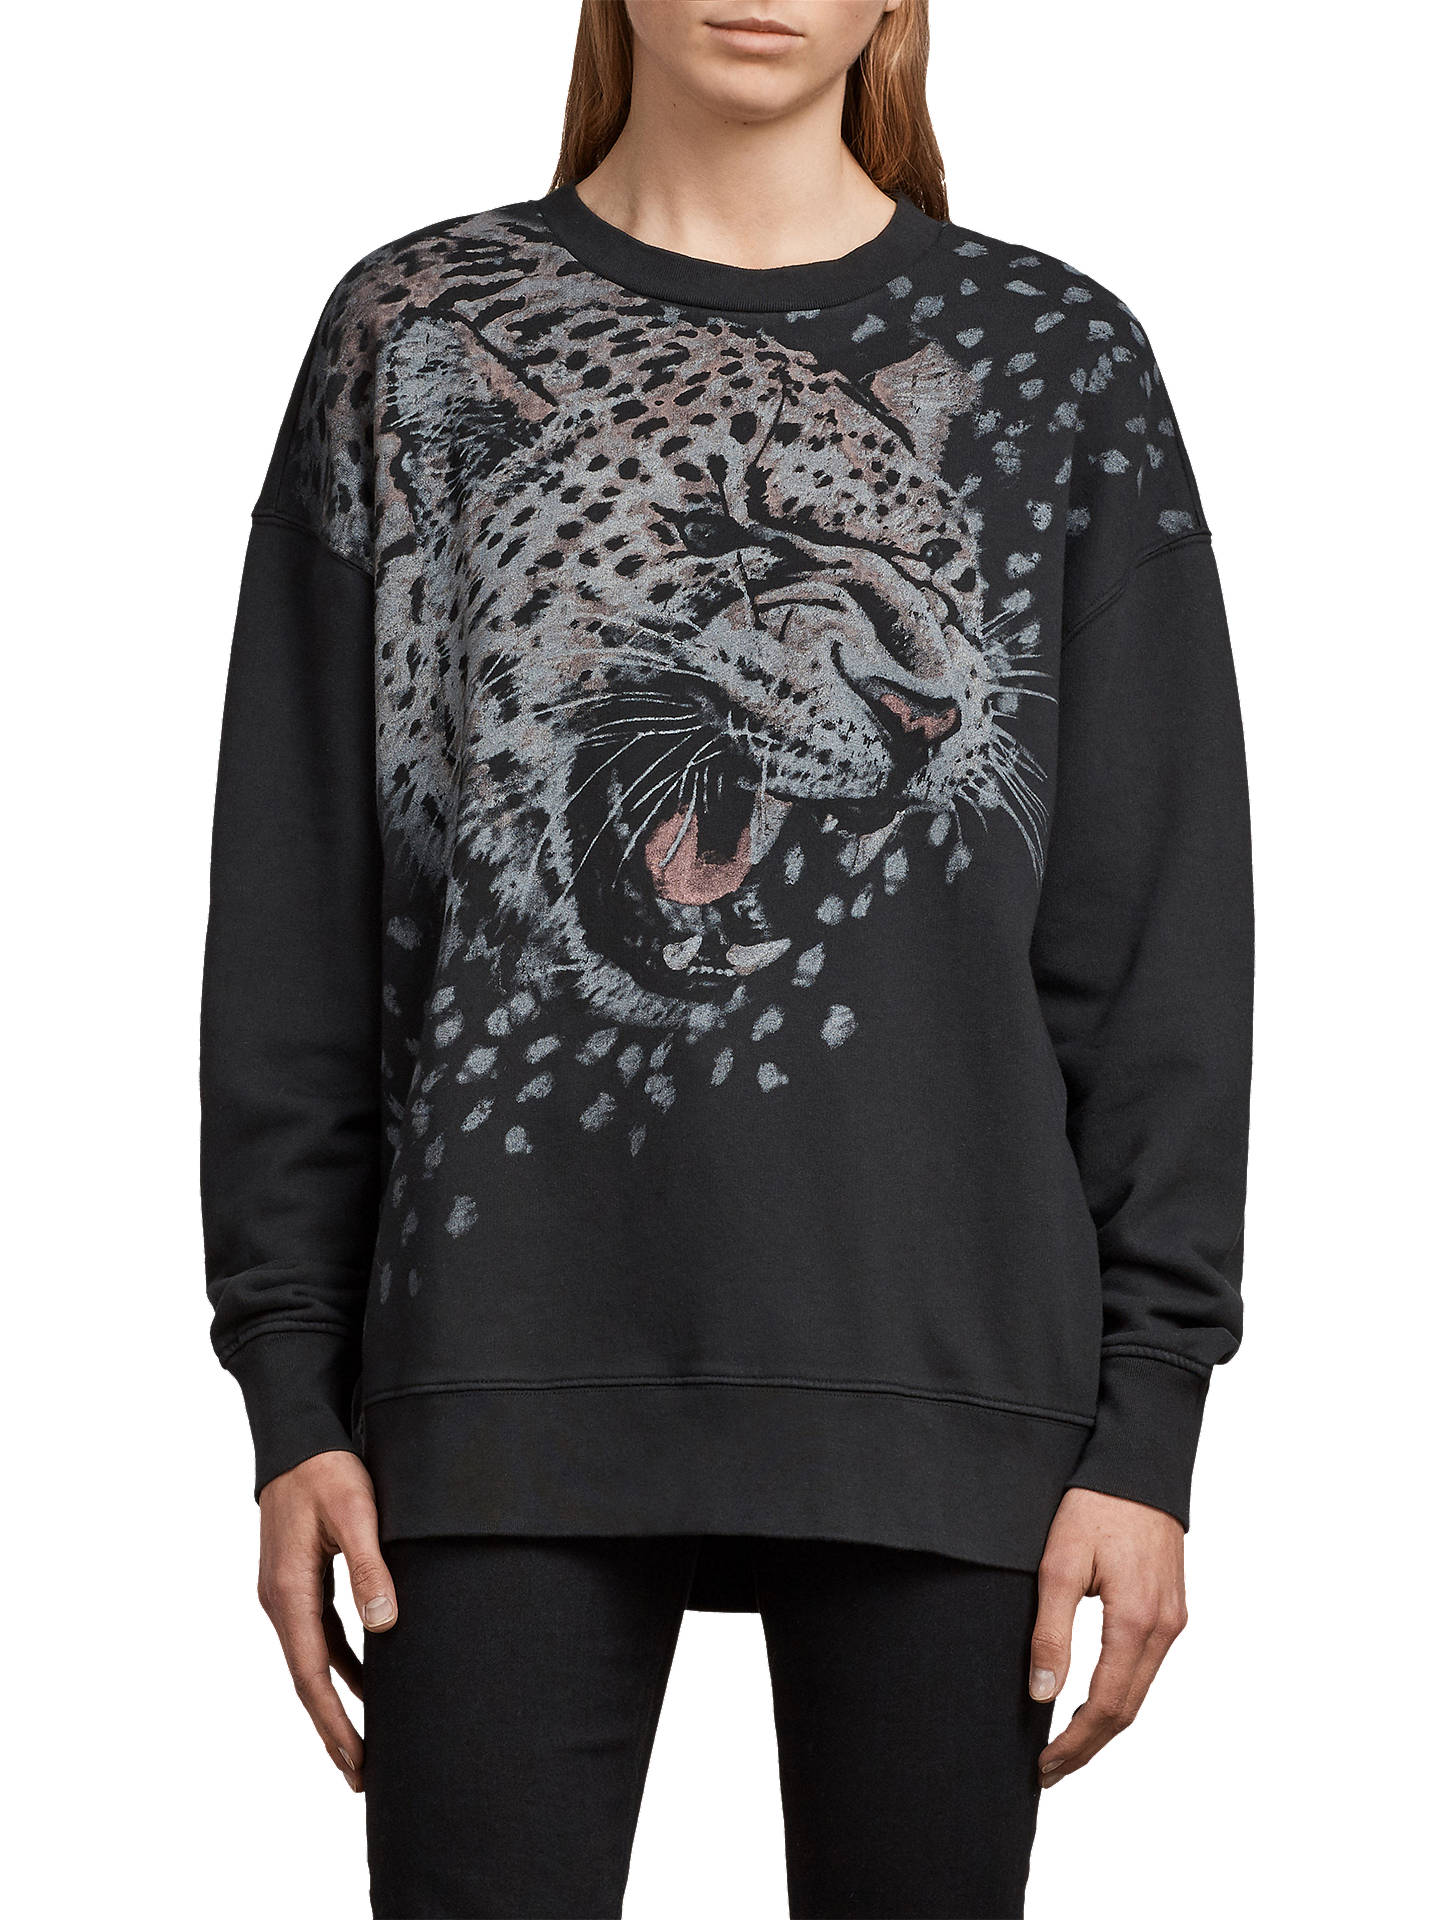 BuyAllSaints Sabre Joy Jumper, Black, XS Online at johnlewis.com